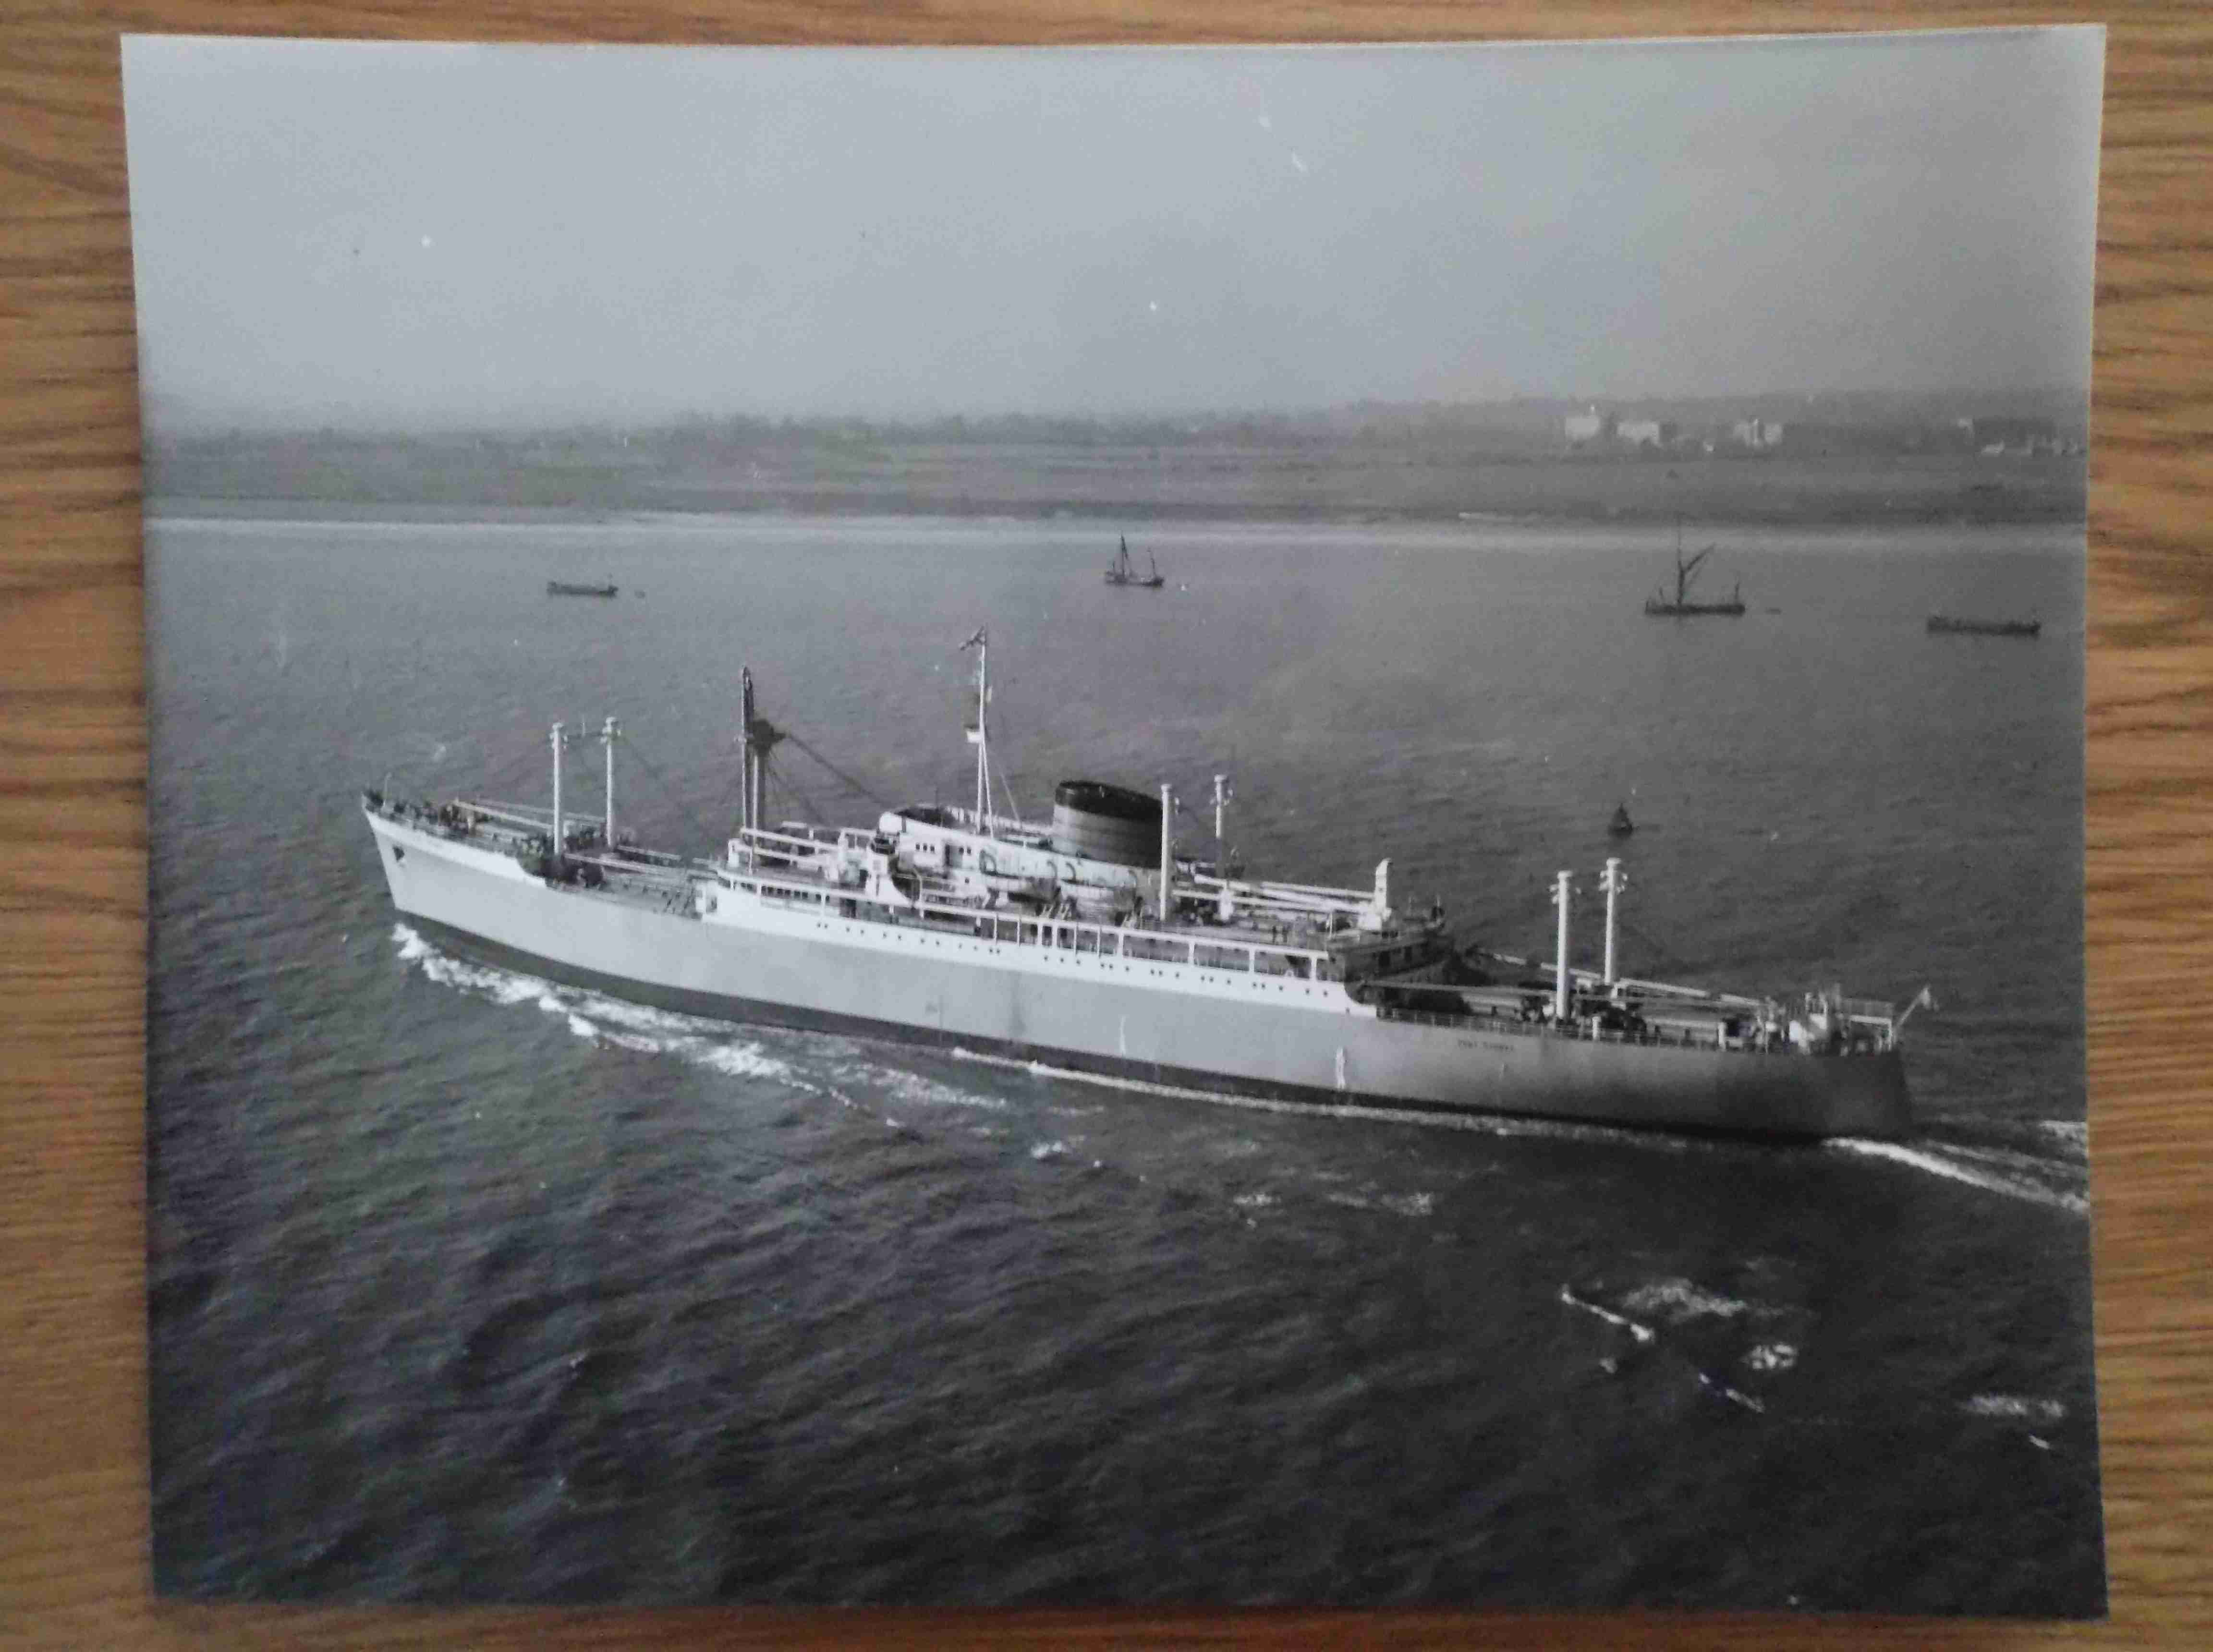 LARGE B/W PHOTOGRAPH OF THE PORT LINE VESSEL THE PORT SYDNEY